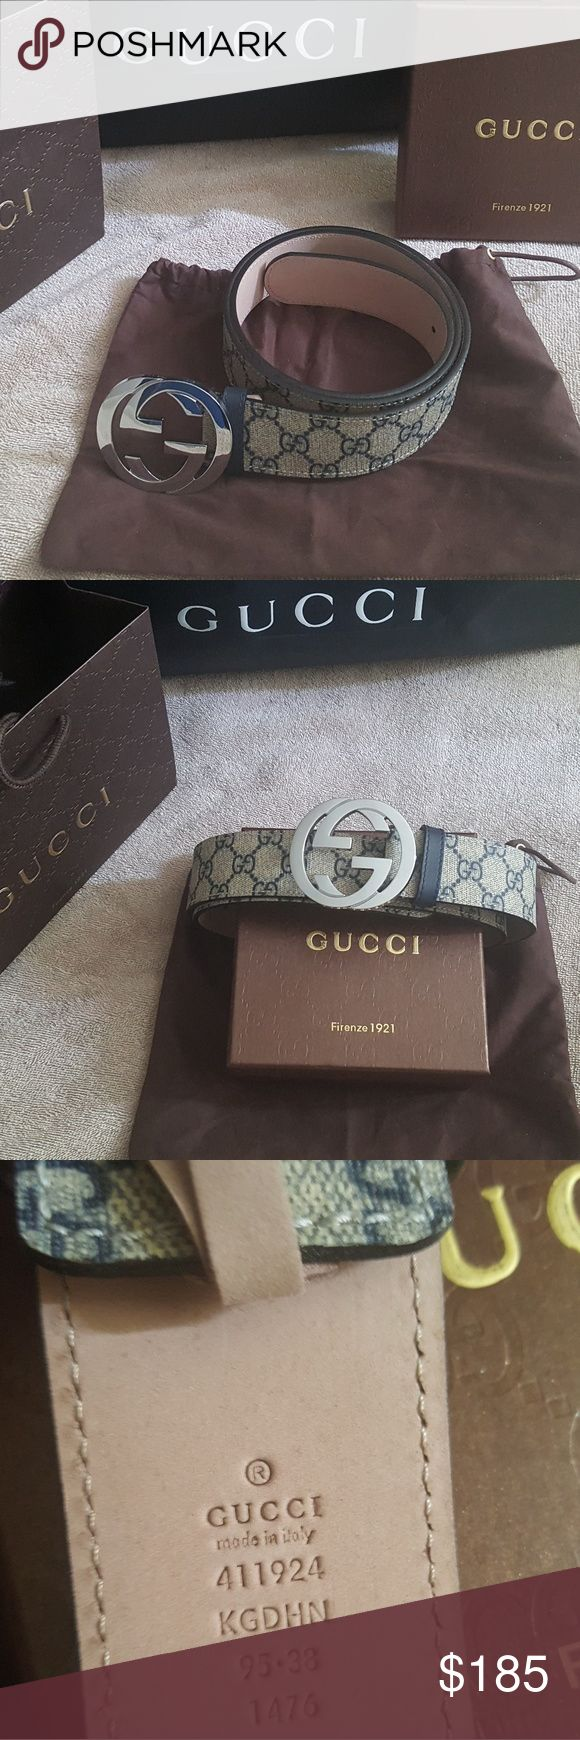 Gucci belt Brand new Gucci belt  in GG supreme canvas,comes with box and dust bag Gucci Accessories Belts